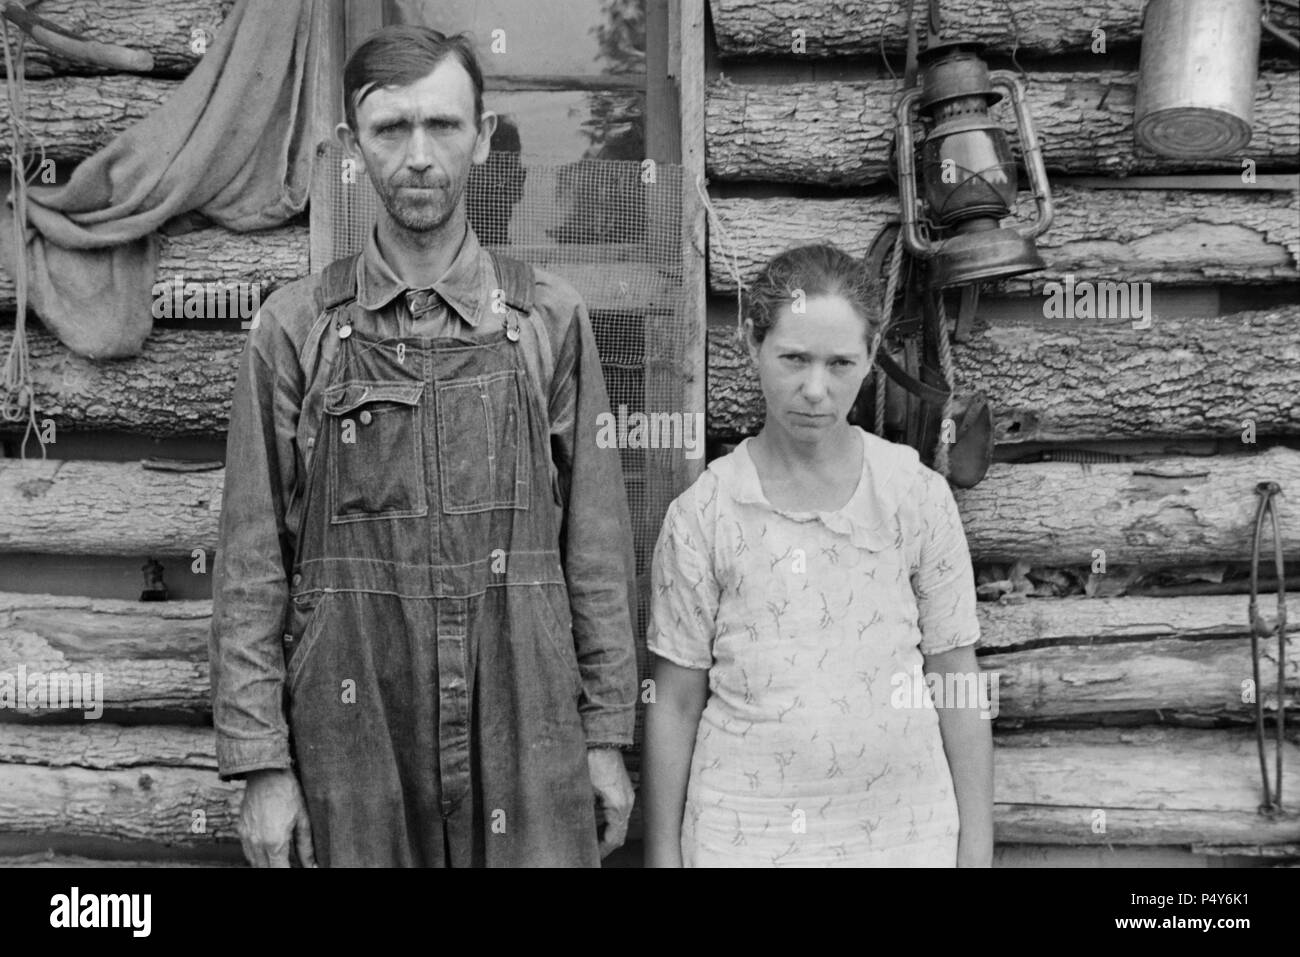 Rehabilitation Clients, Boone County, Arkansas, USA, Ben Shahn for U.S. Resettlement Administration, October 1935 - Stock Image